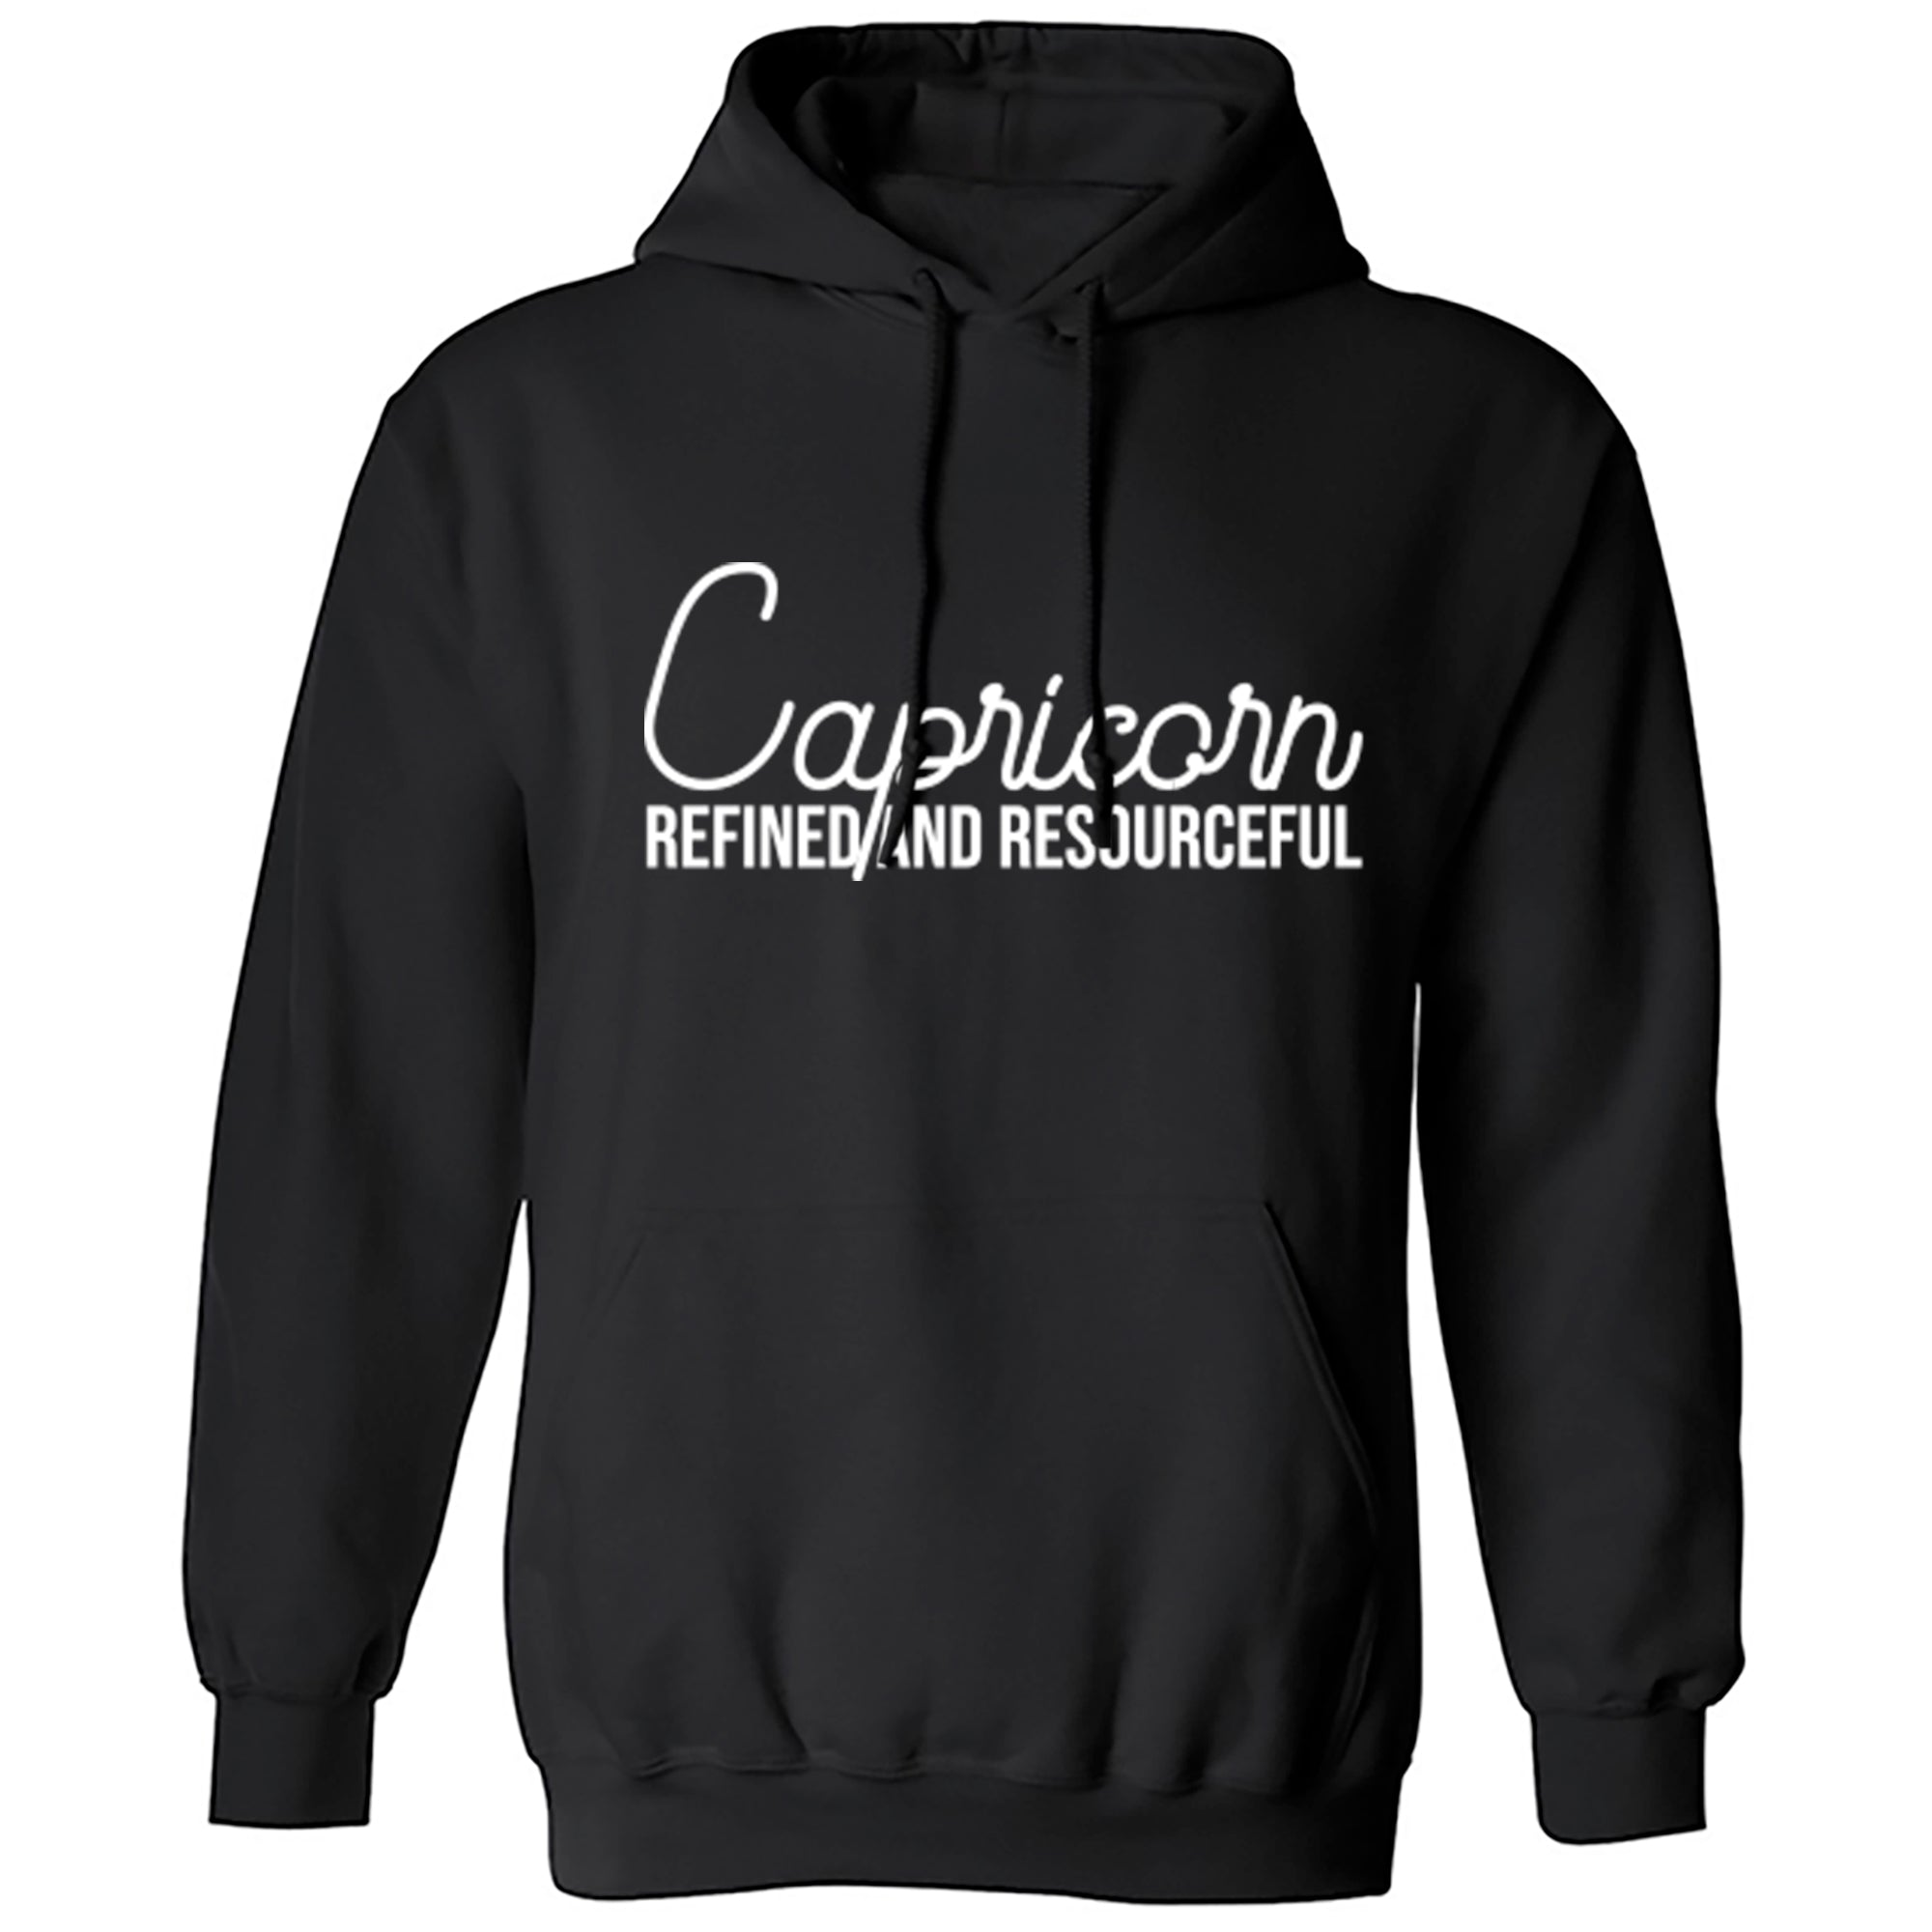 Capricorn, Refined And Resourceful Unisex Hoodie S0444 - Illustrated Identity Ltd.